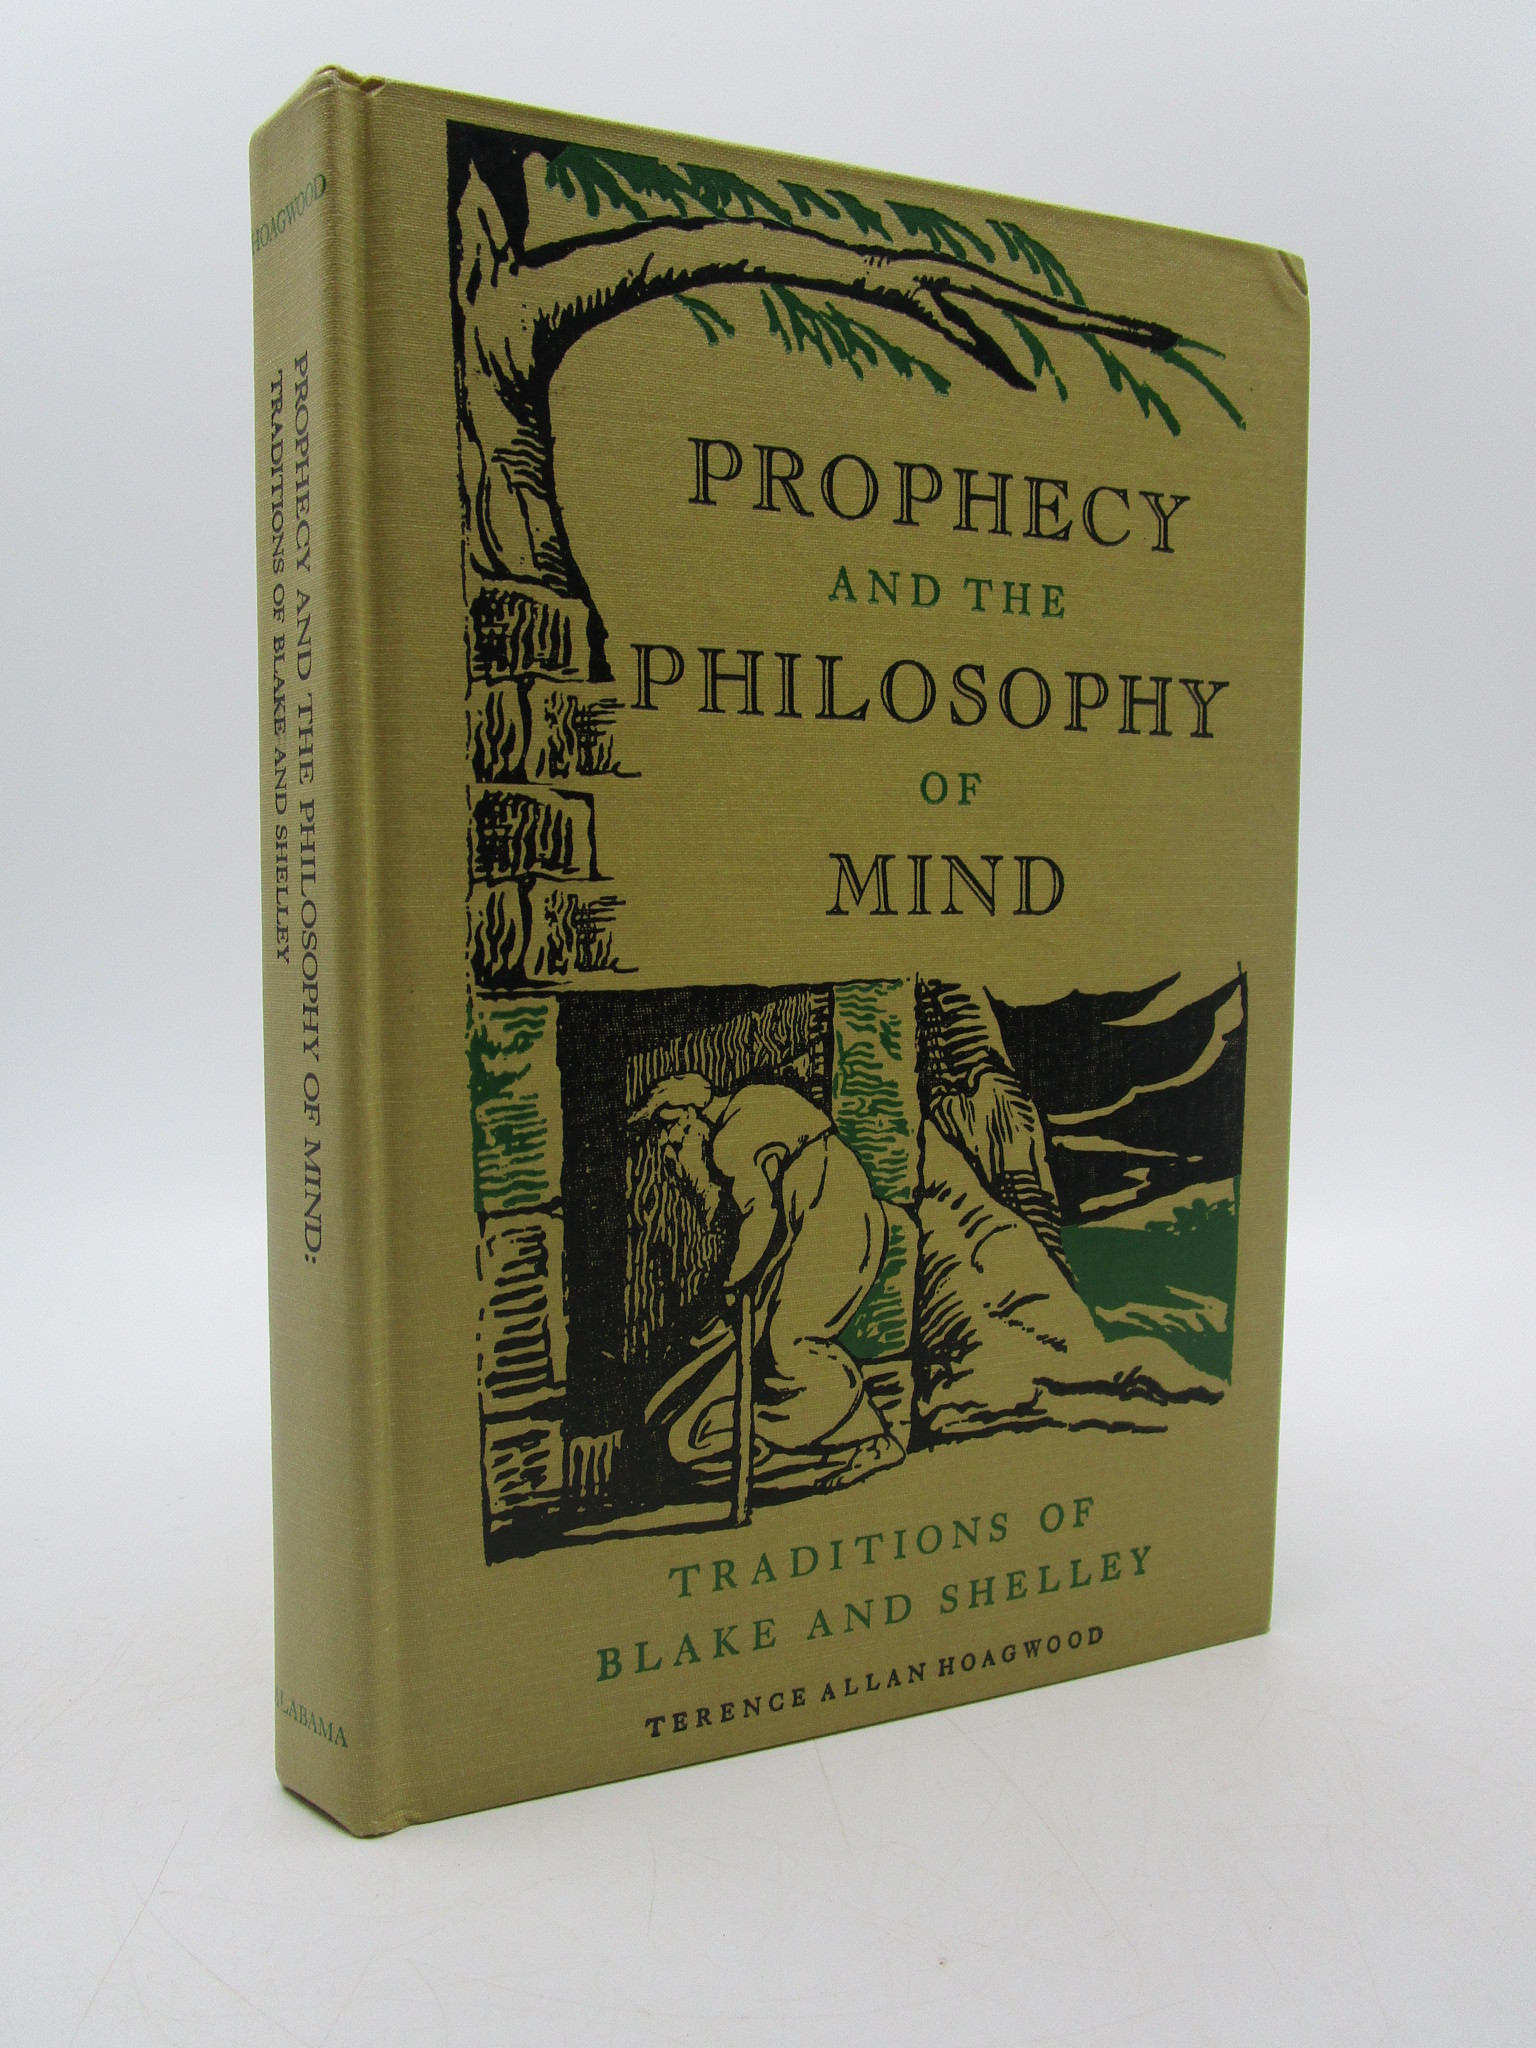 Image for Prophecy and the Philosophy of Mind: Traditions of Blake and Shelley